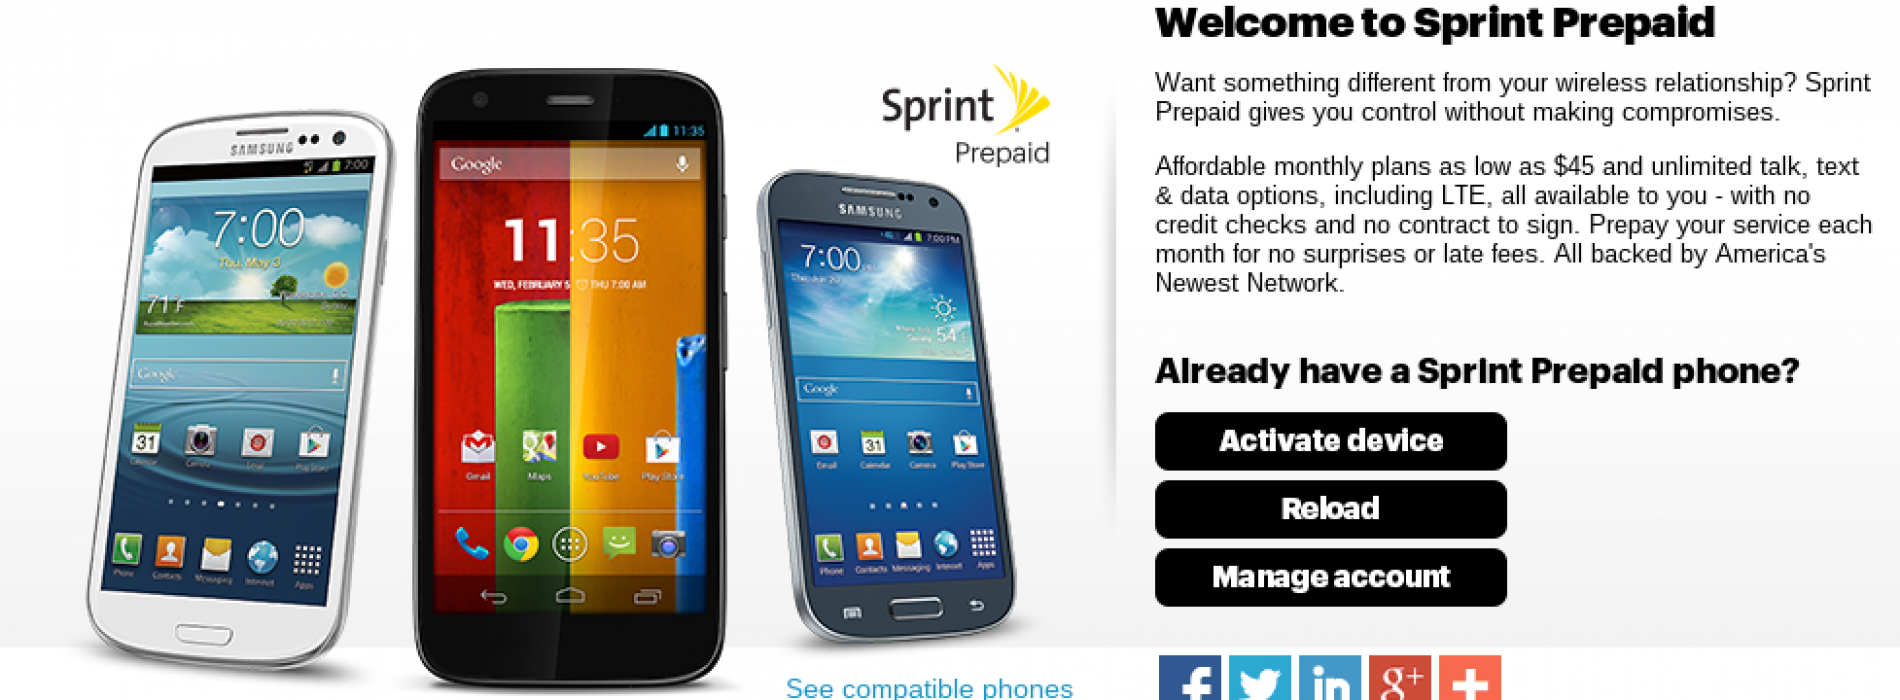 Sprint tweaks prepaid with new plans and devices